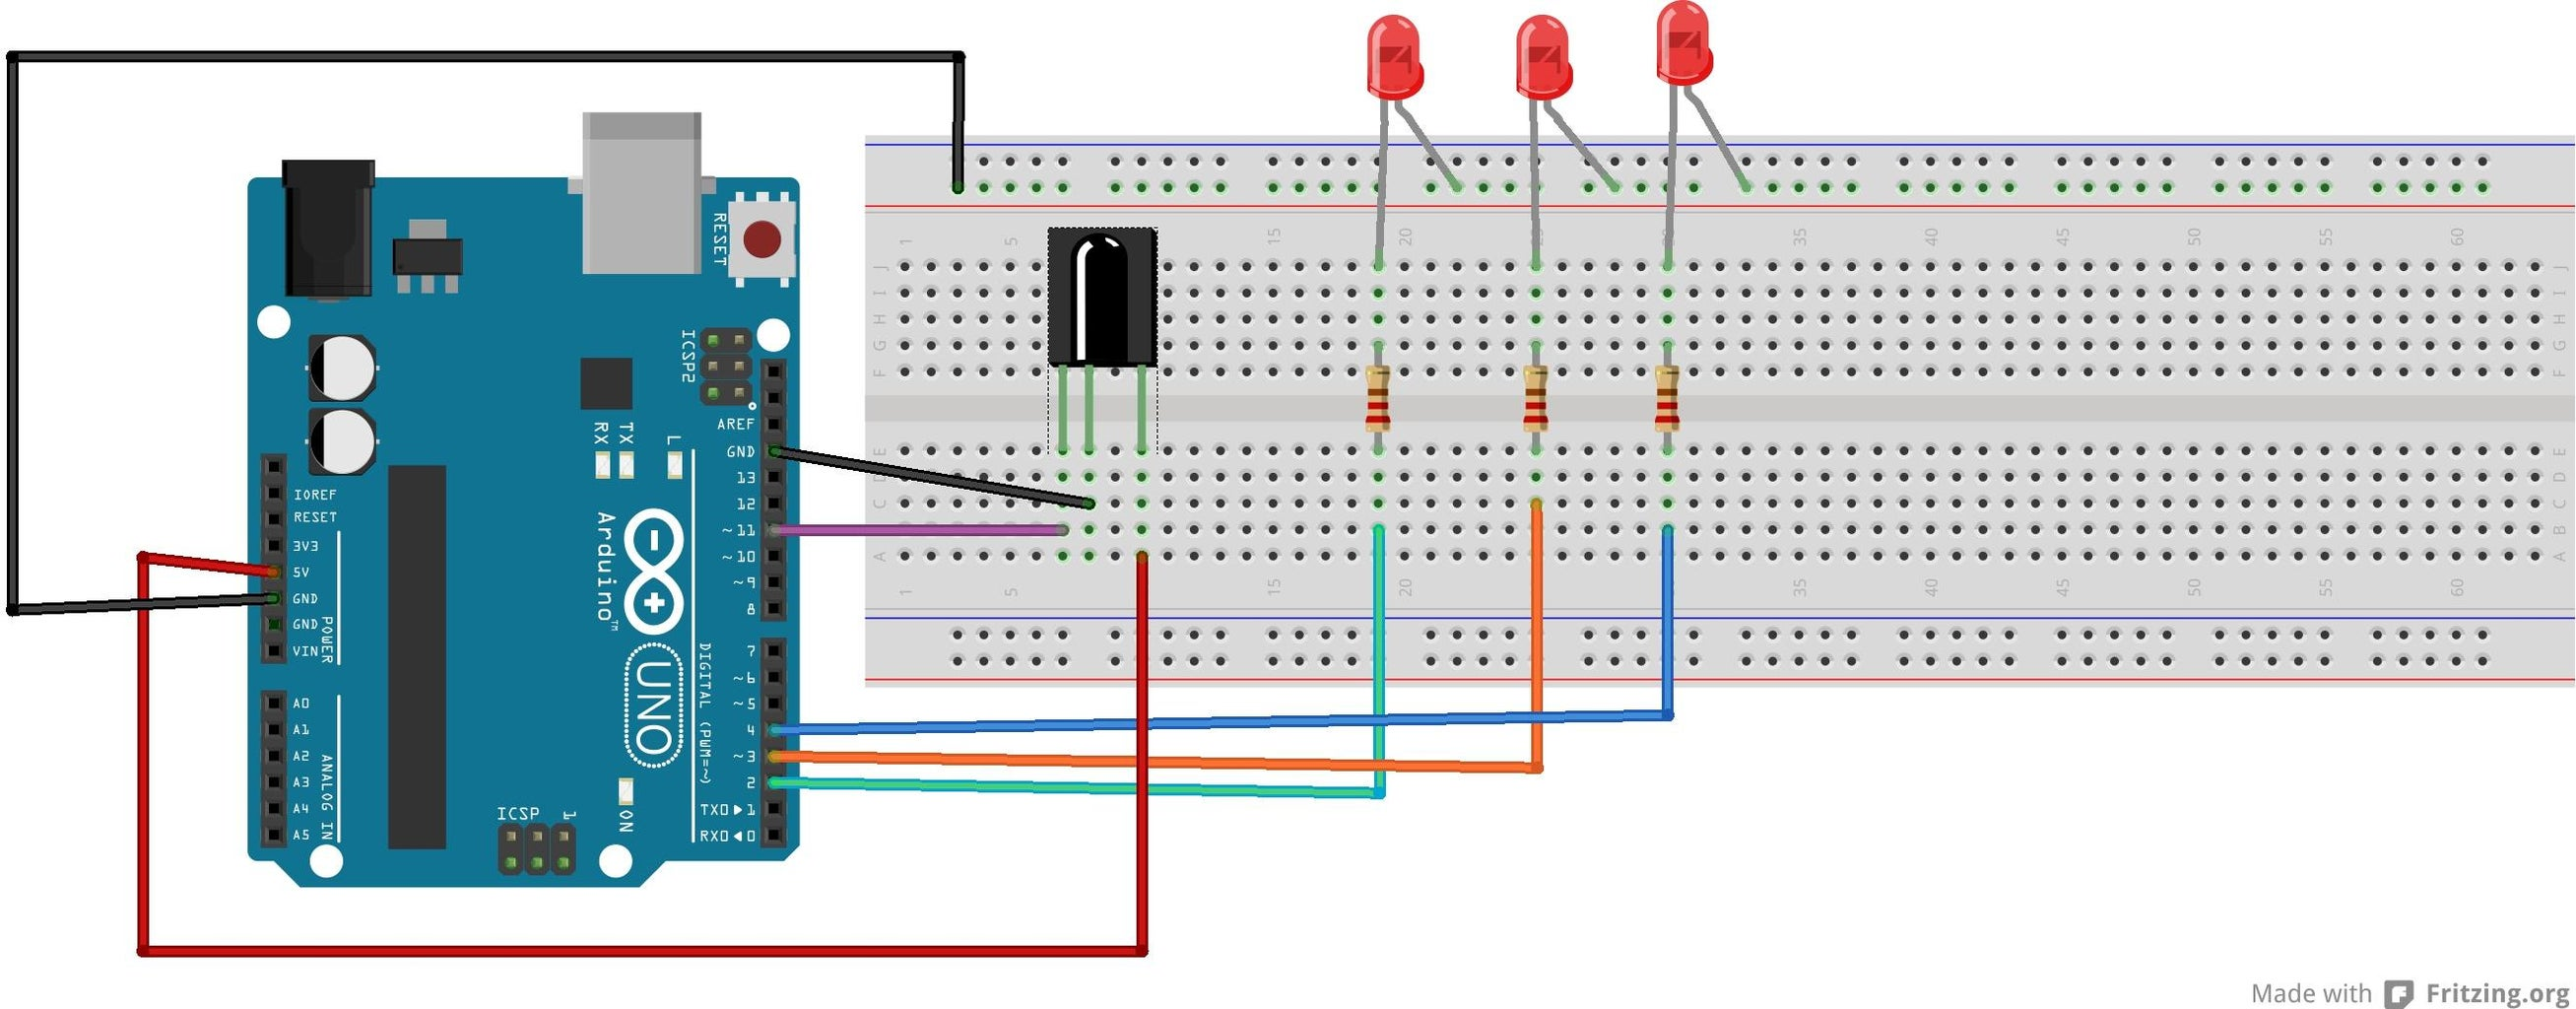 Complete the New Circuit to Light Up LED S